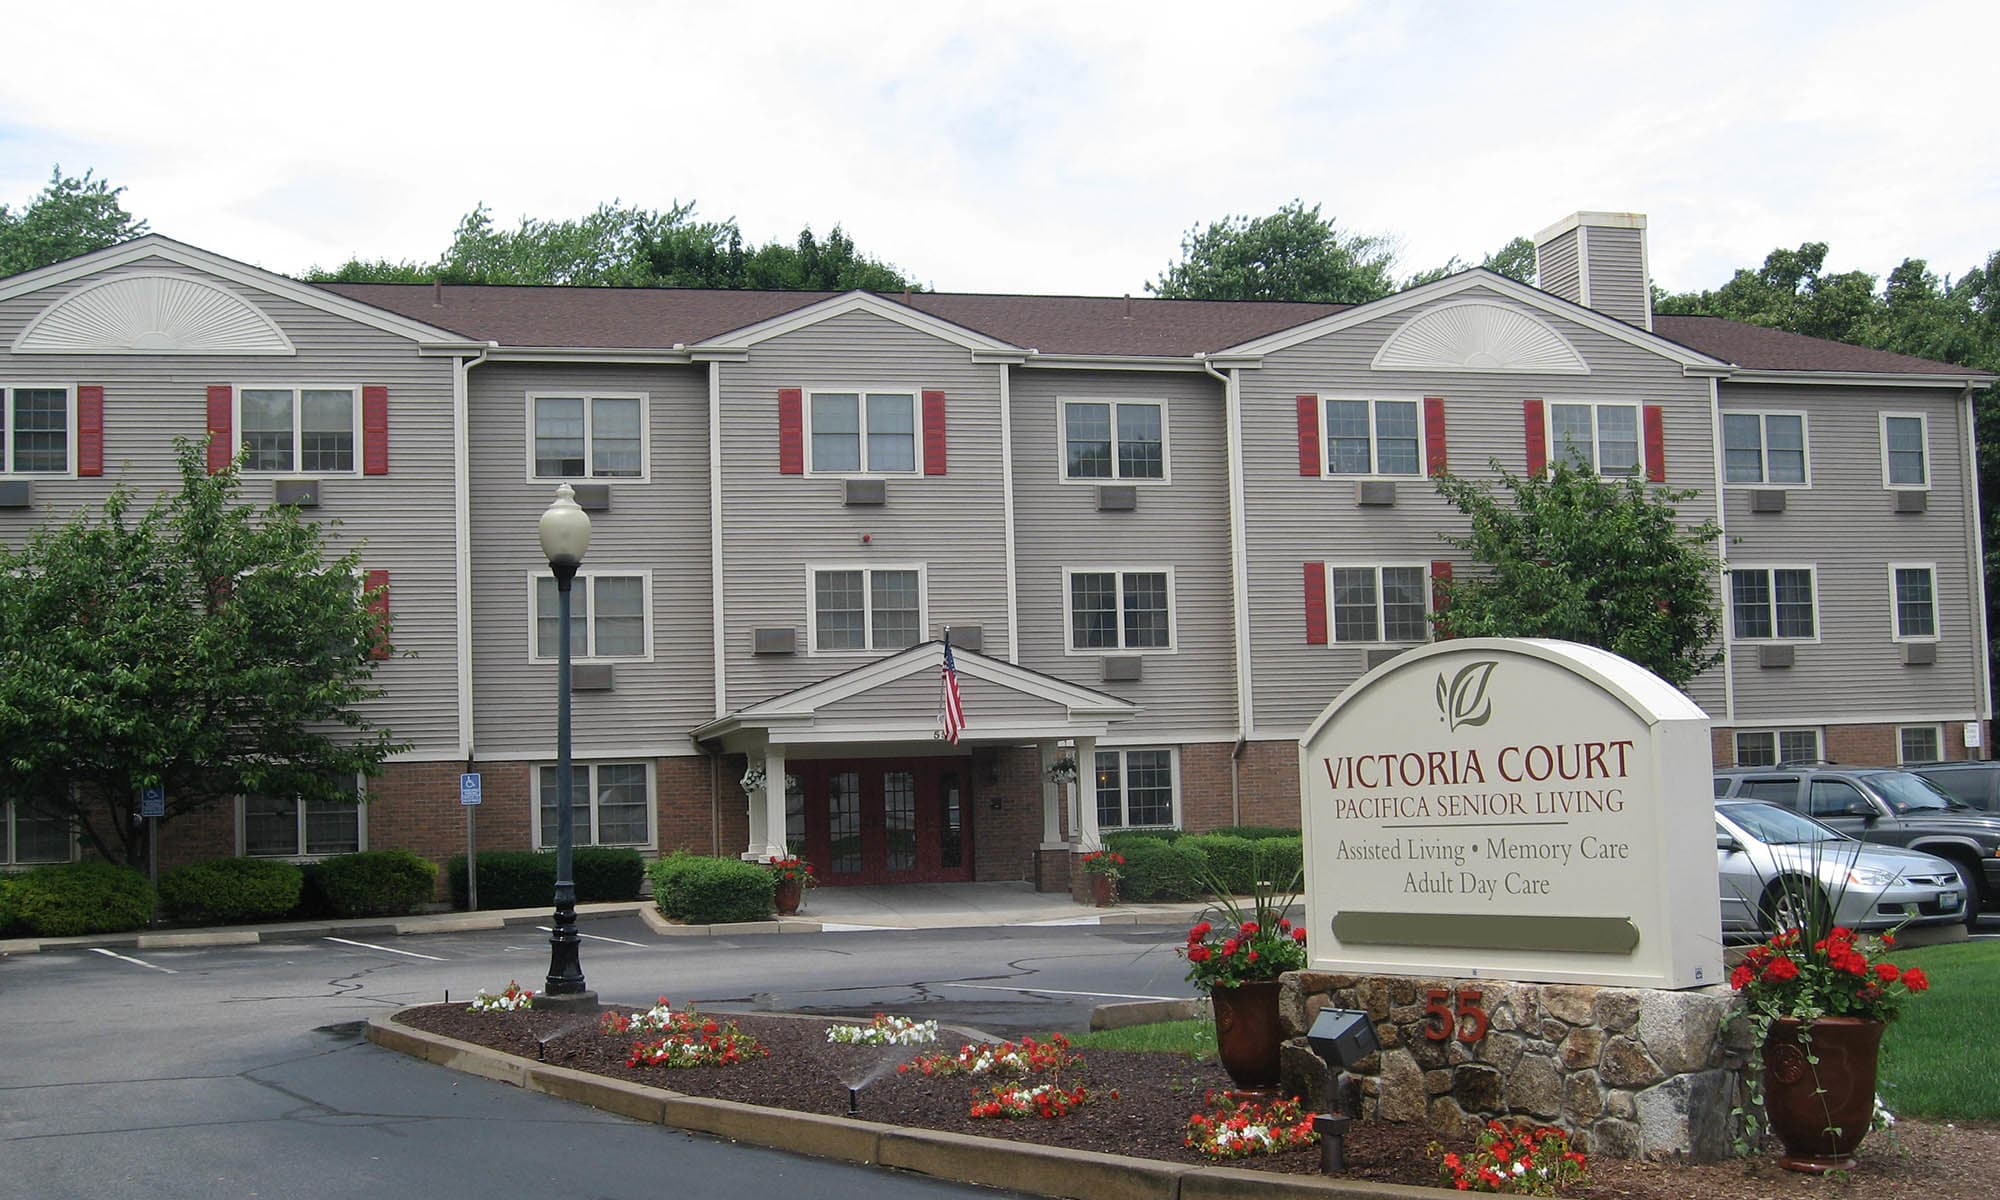 Exterior view of Pacifica Senior Living Victoria Court